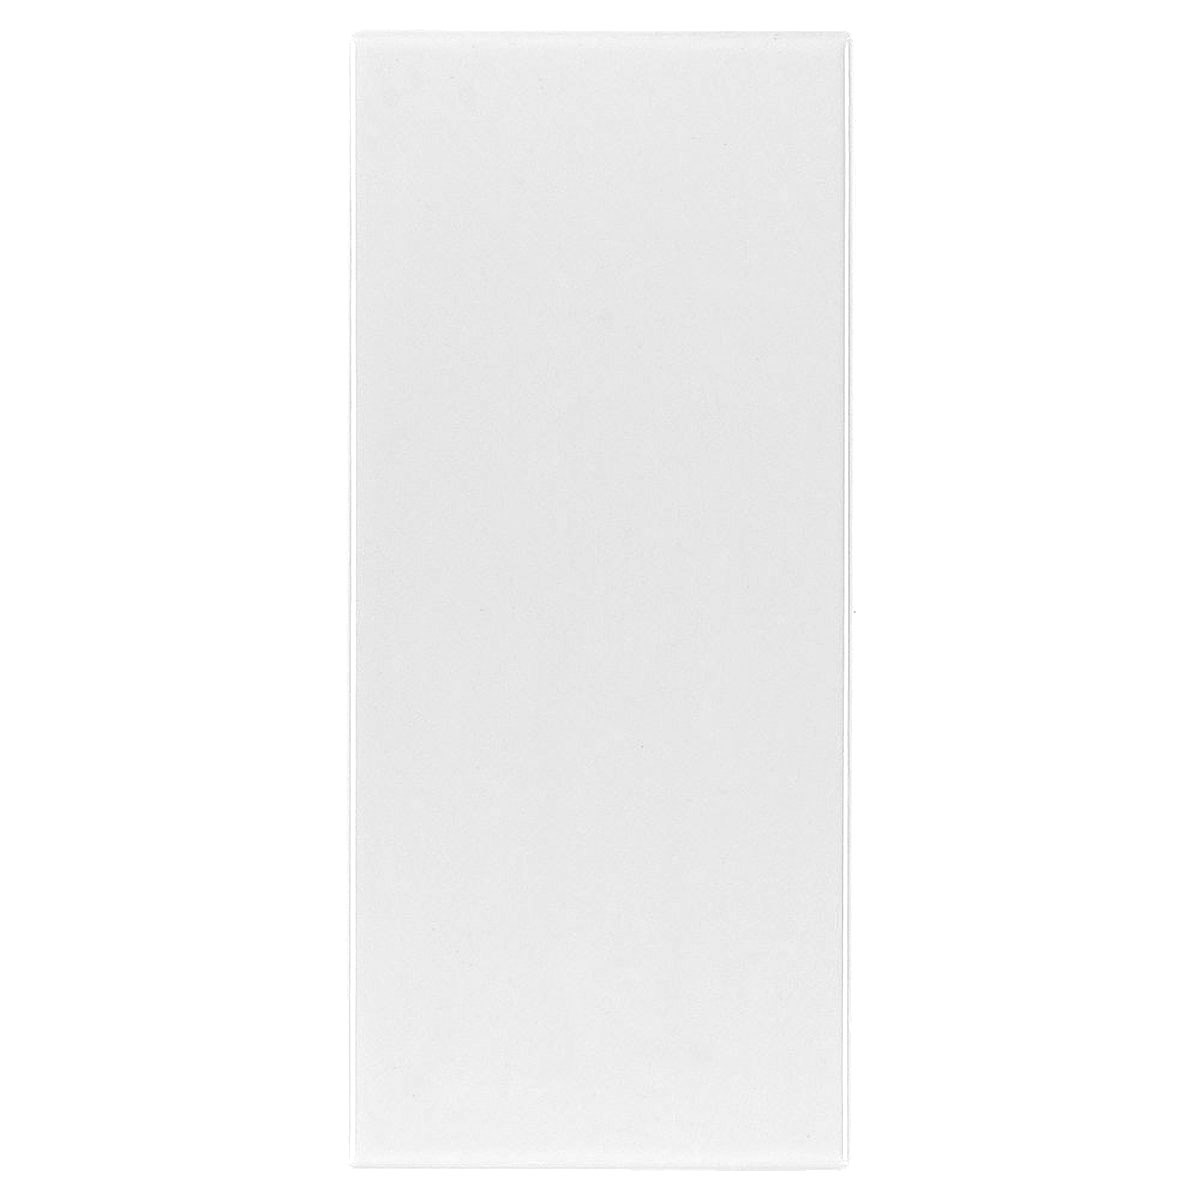 Sea Gull Lighting Address Light Address Light Number Tile 9 in White Plastic 90619-68 photo